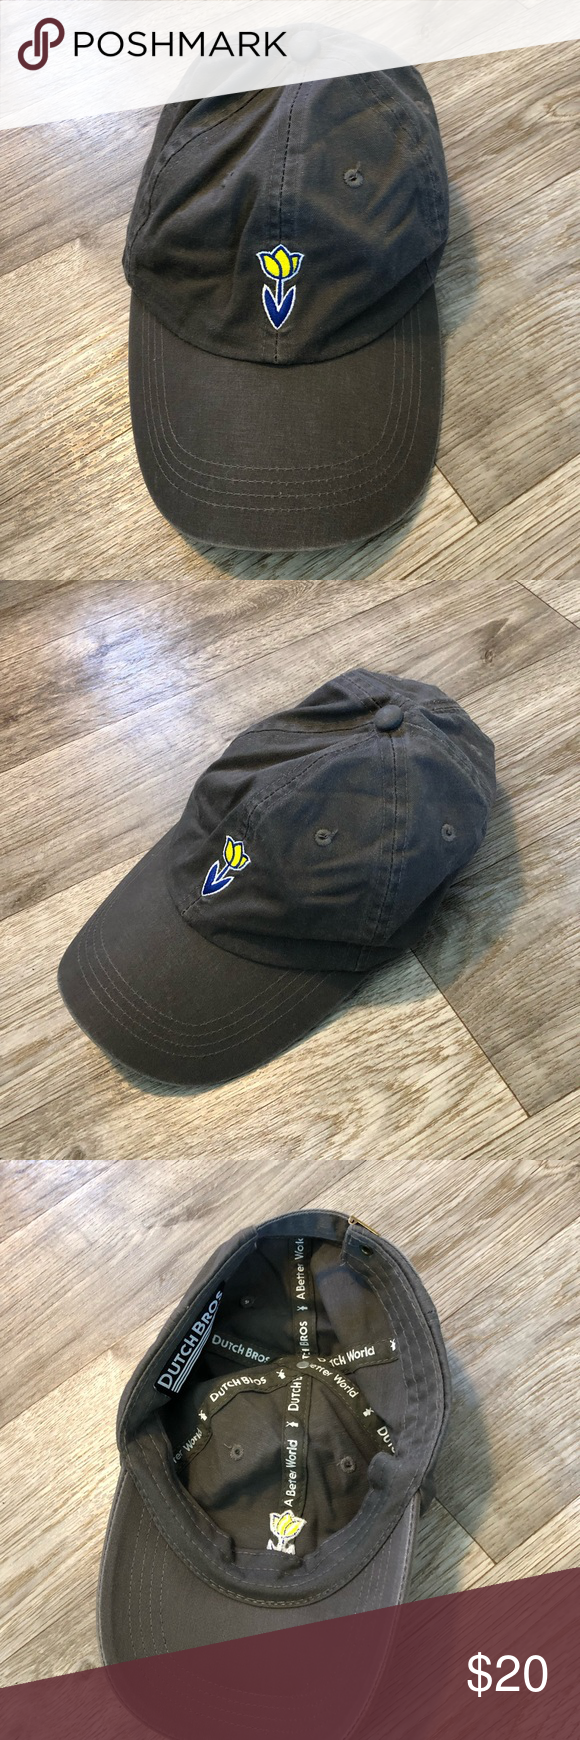 dutch bros tulip dad hat dutch bros tulip dad hat  Size: Adjustable   Good preloved condition. Barely worn   Bundle fav items for a personal discount. Offers are always welcome, too! No trades. Thank you! (60) Dutch Bros Accessories Hats #dutchbros dutch bros tulip dad hat dutch bros tulip dad hat  Size: Adjustable   Good preloved condition. Barely worn   Bundle fav items for a personal discount. Offers are always welcome, too! No trades. Thank you! (60) Dutch Bros Accessories Hats #dutchbros du #dutchbros